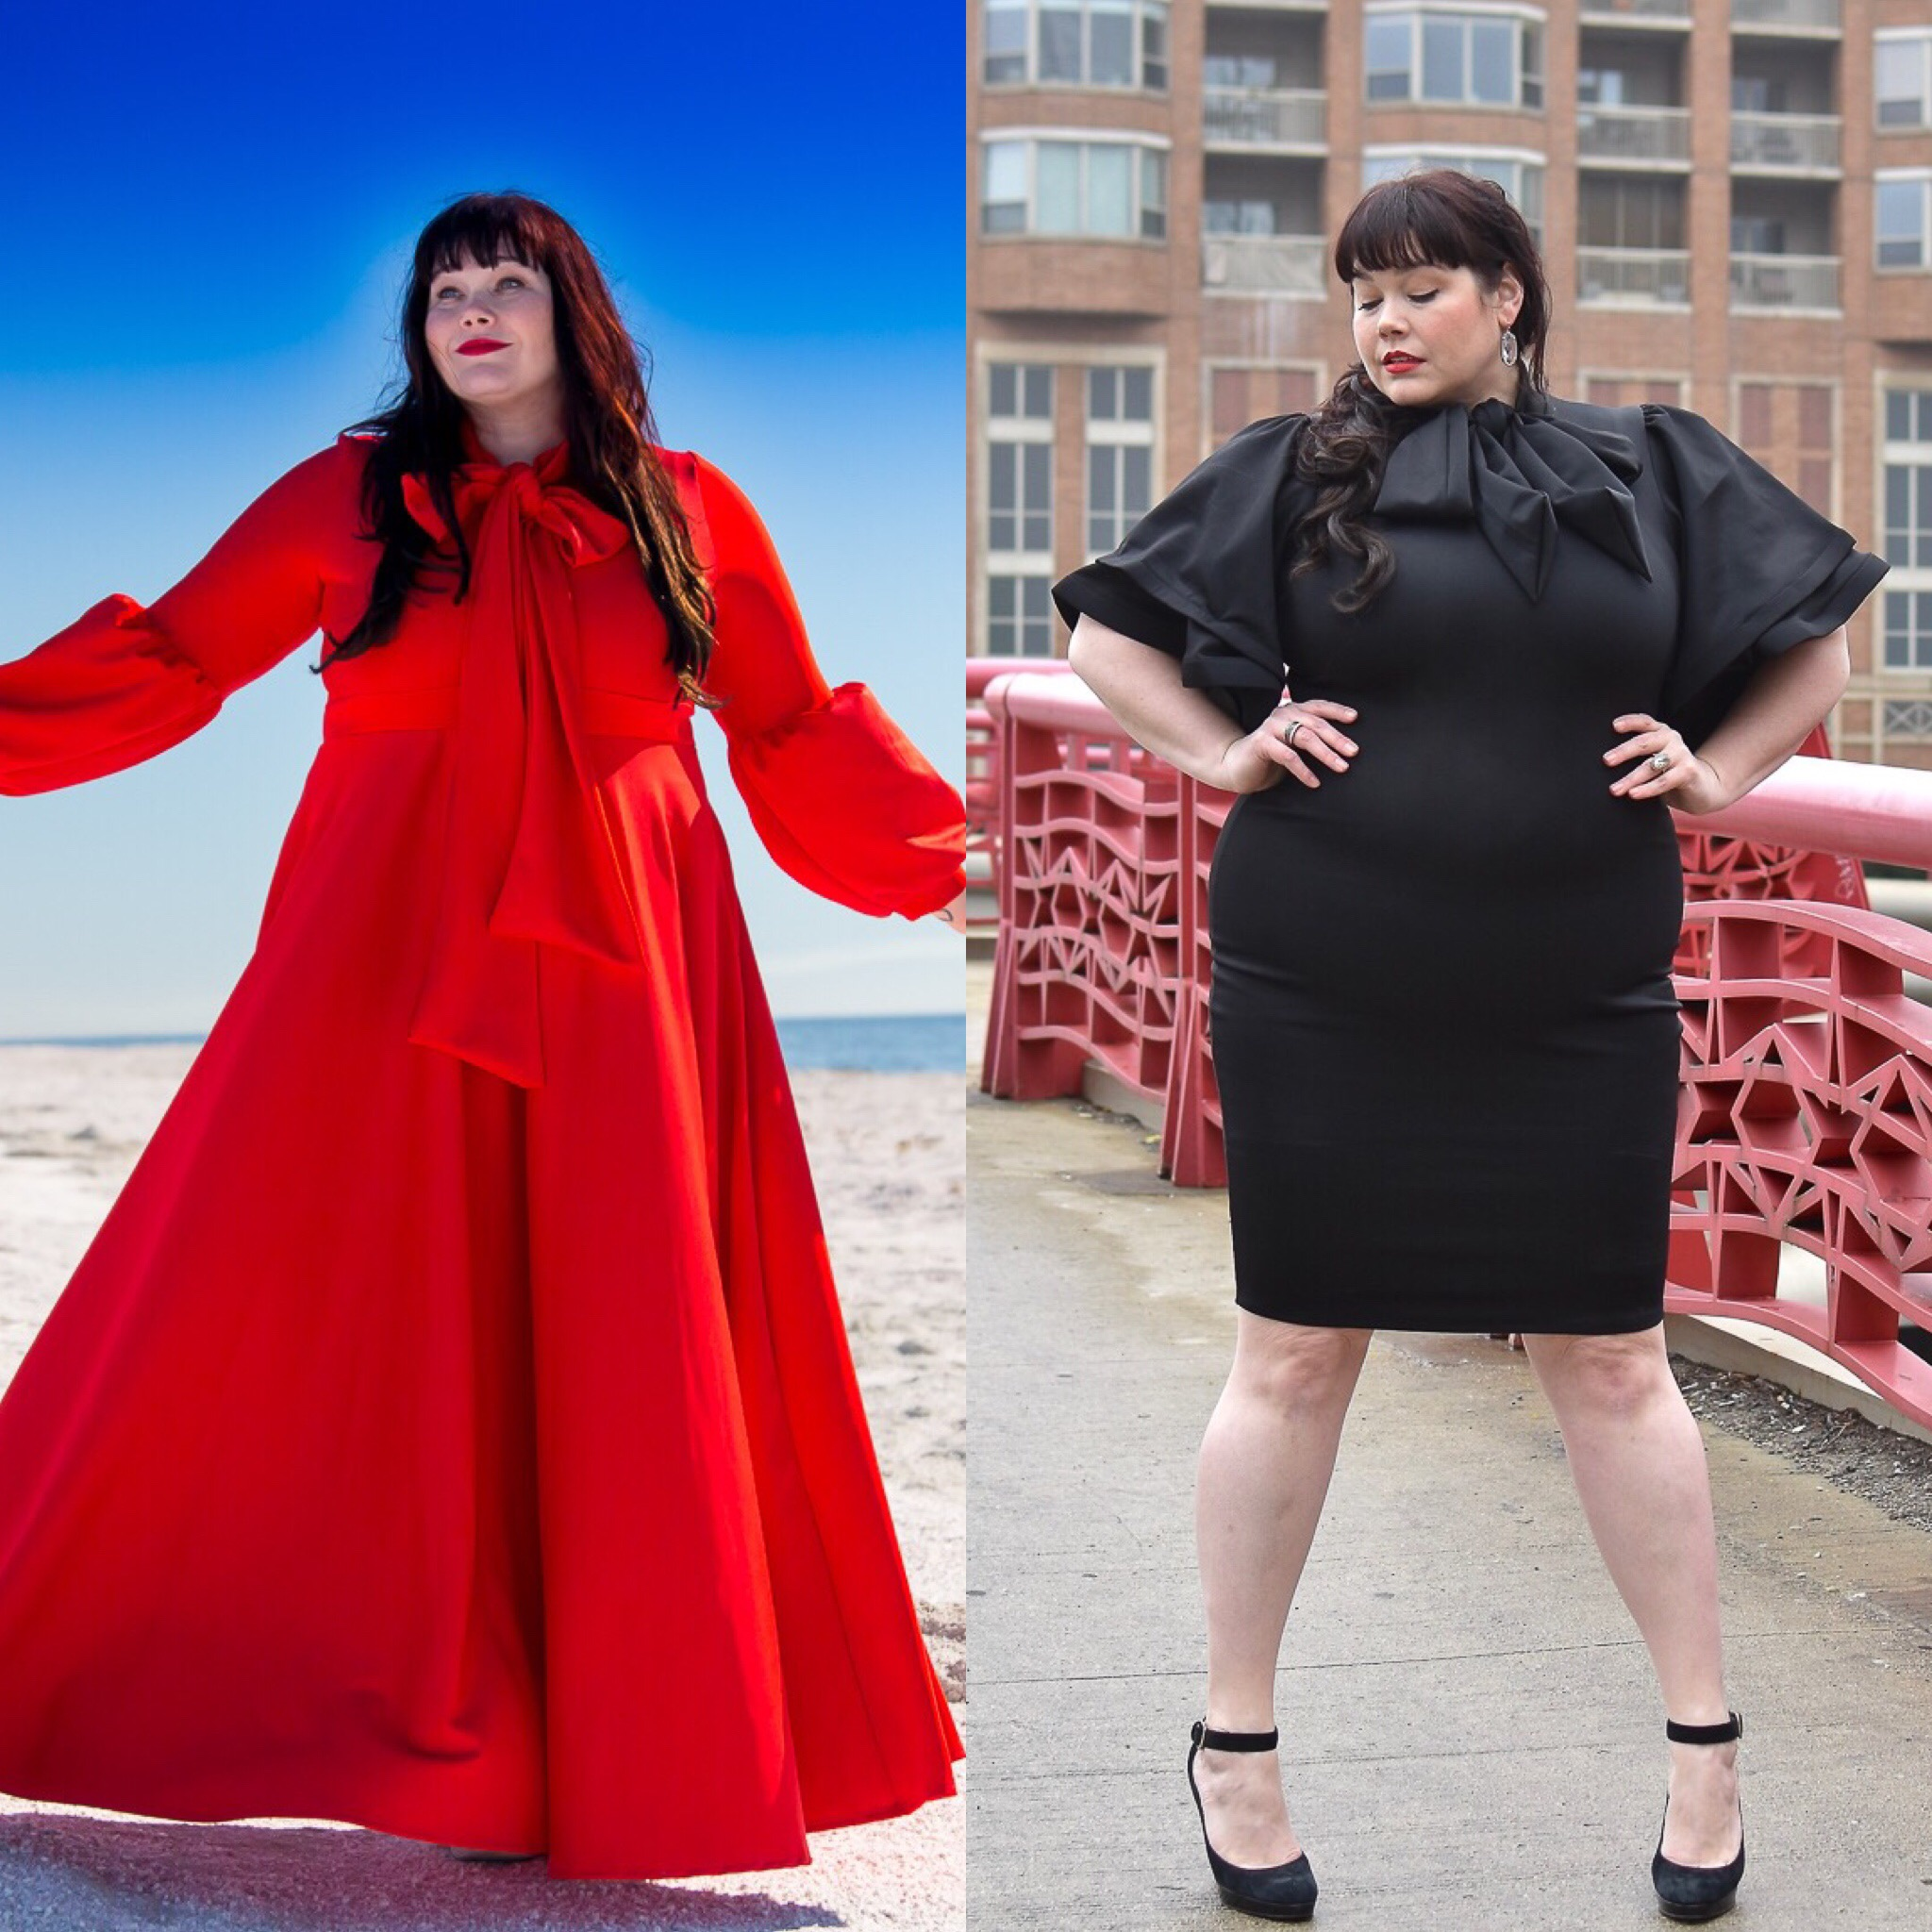 Red dress Archives | Style Plus Curves - A Chicago Plus Size ...